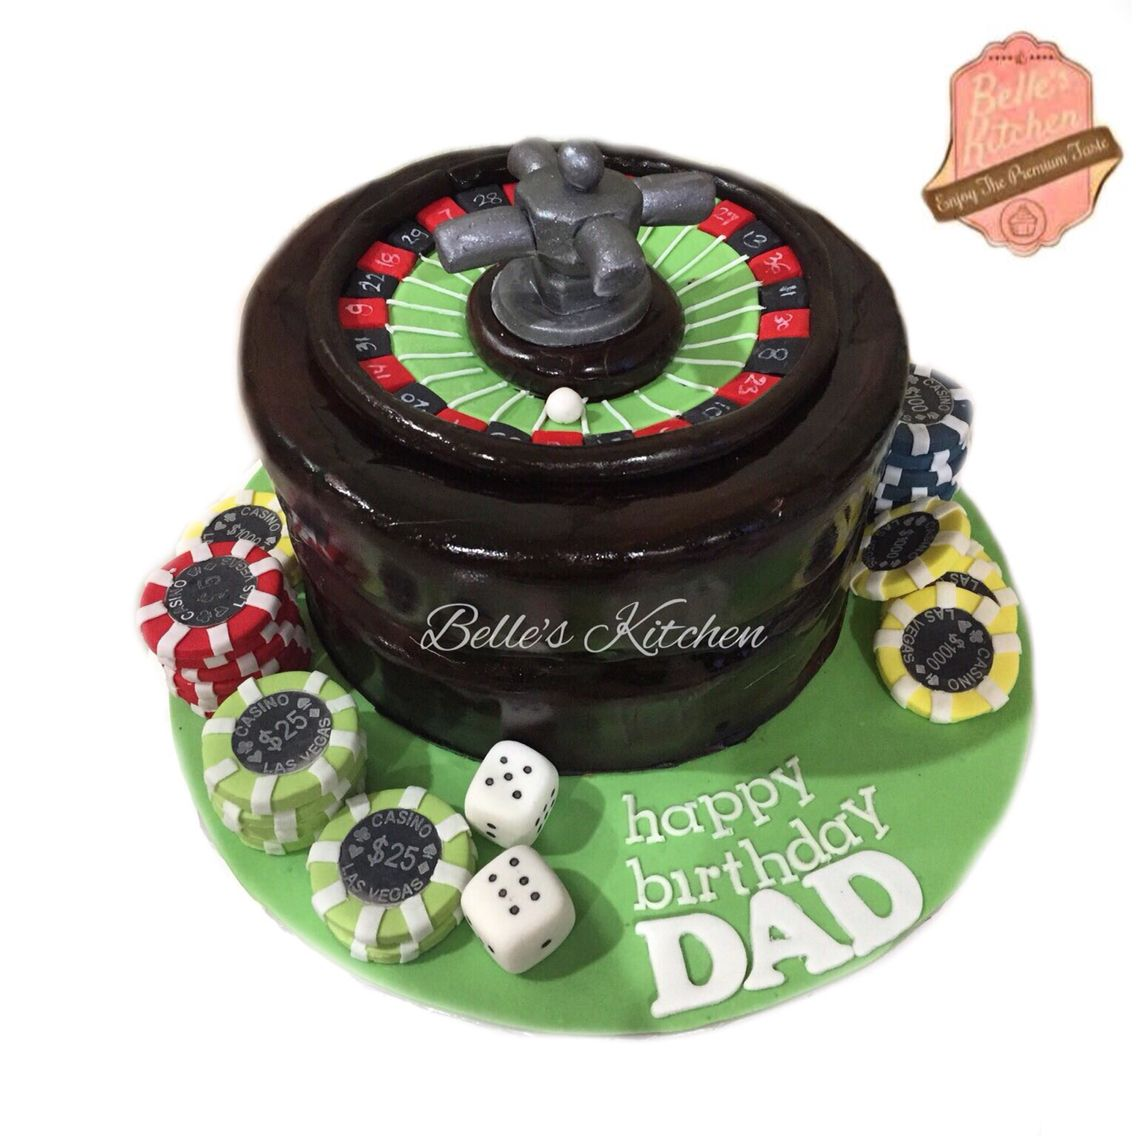 Casino Cake By Belle's Kitchen, To Order Contact Our WA: 081294055786, Line: Bellekitchen, Also Be Sure To Follow Our Instagram @belle_kitchen